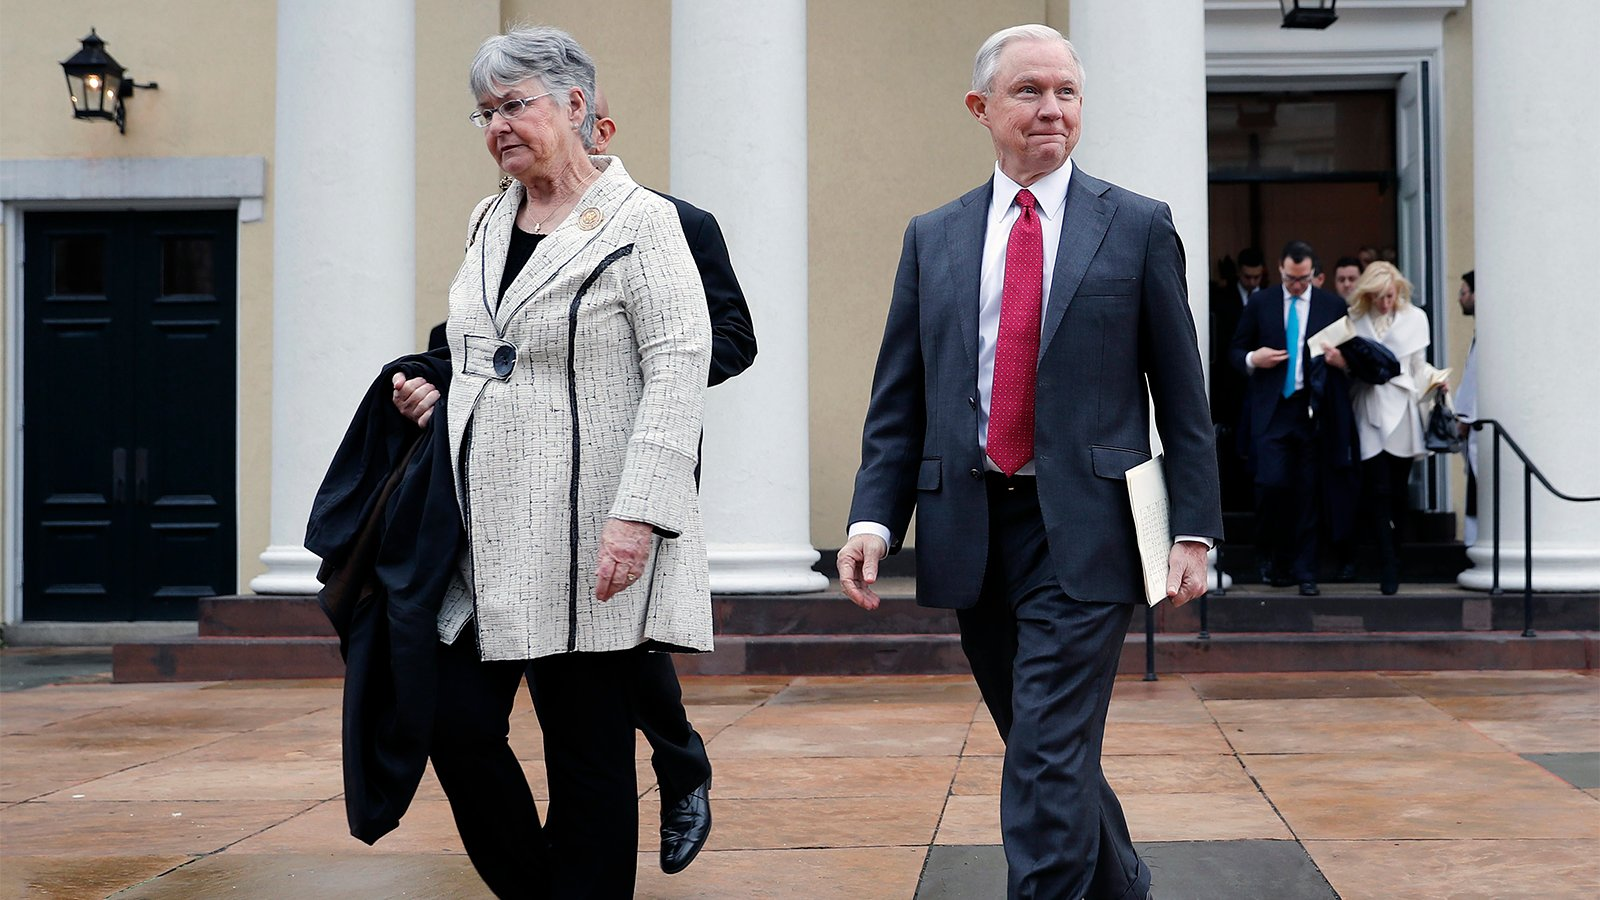 More than 600 United Methodists file formal church complaint against Jeff Sessions - Religion News Service